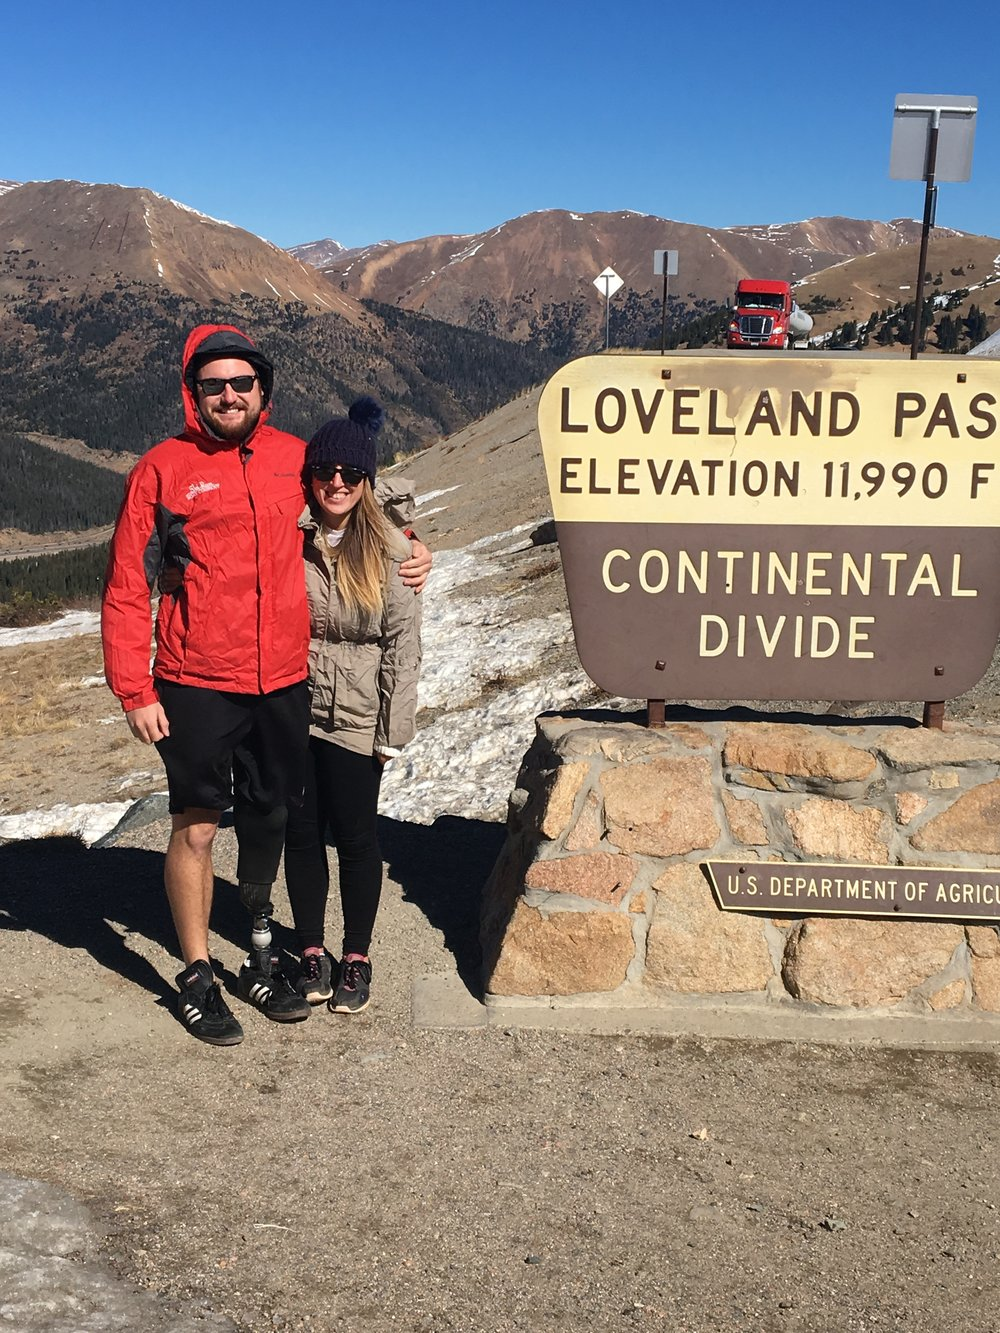 joe and i at the loveland pass